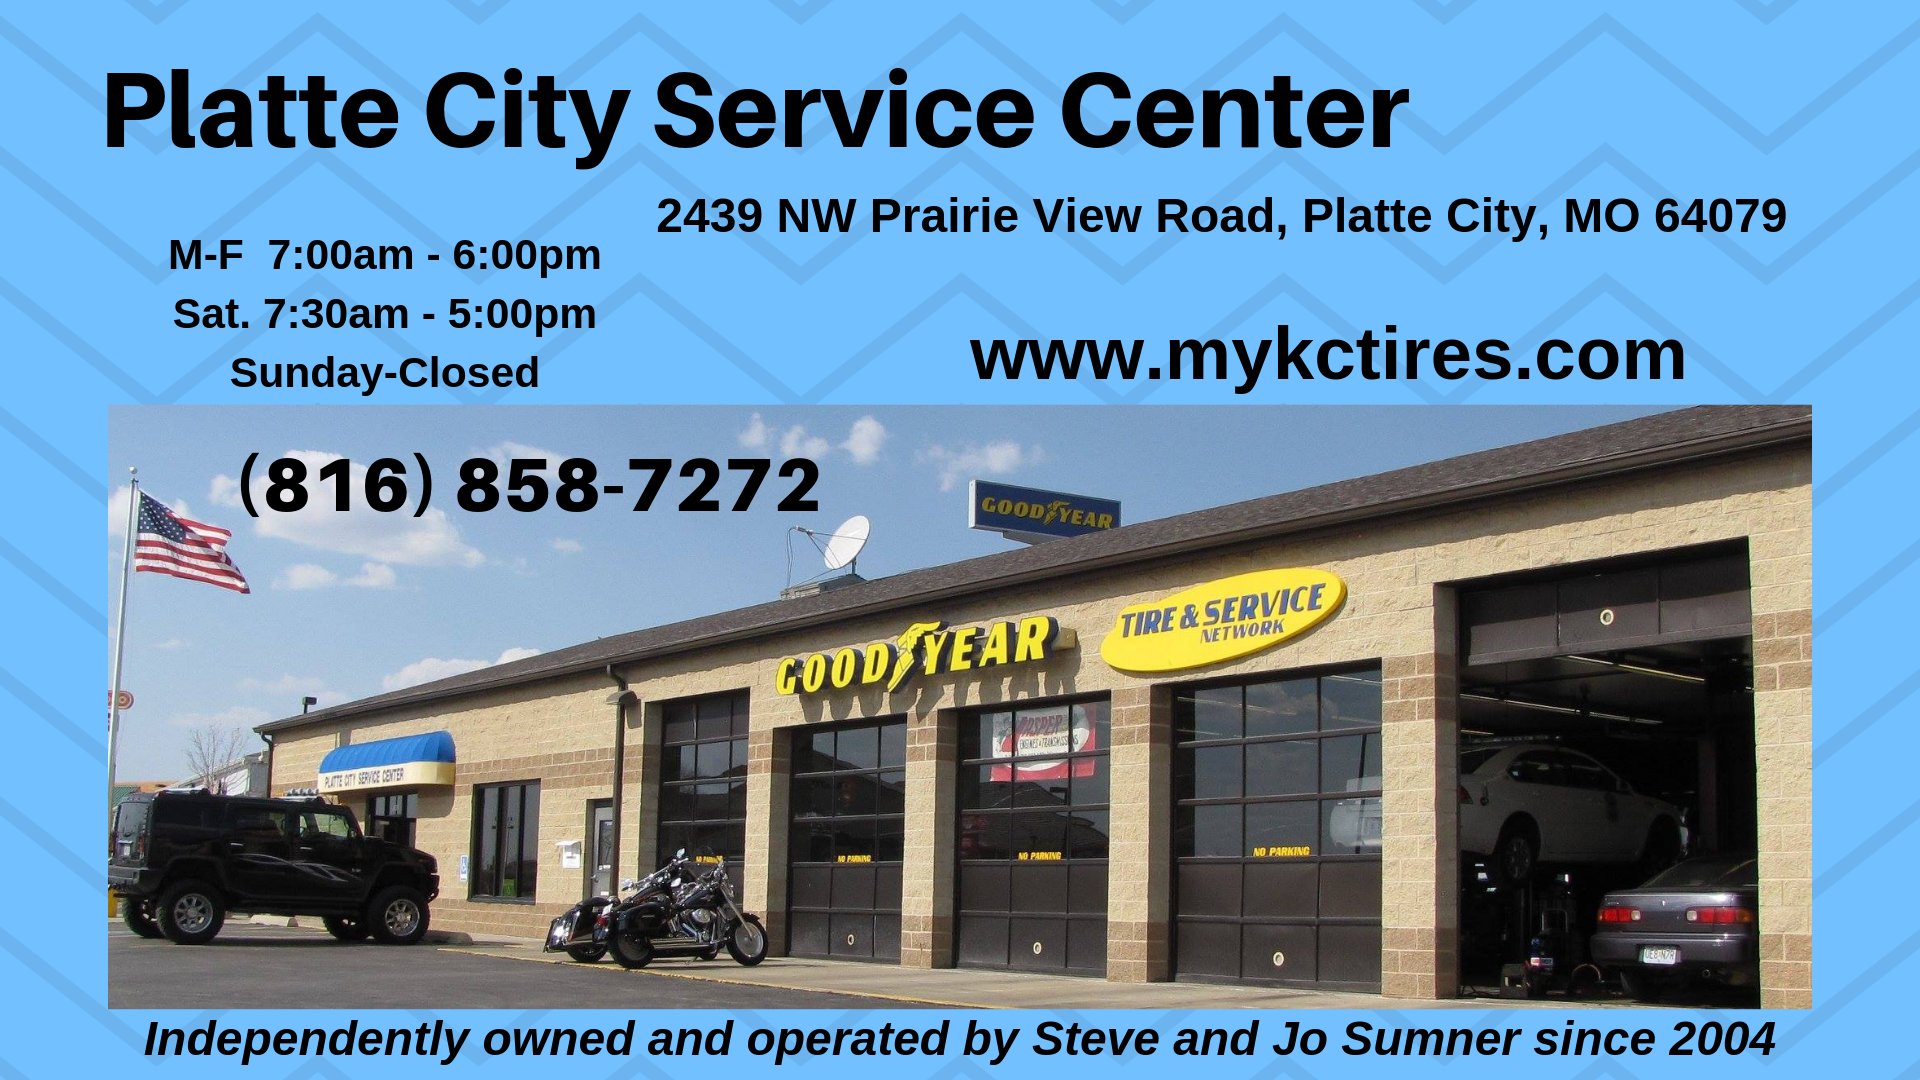 Platte City Service Center Ad.png